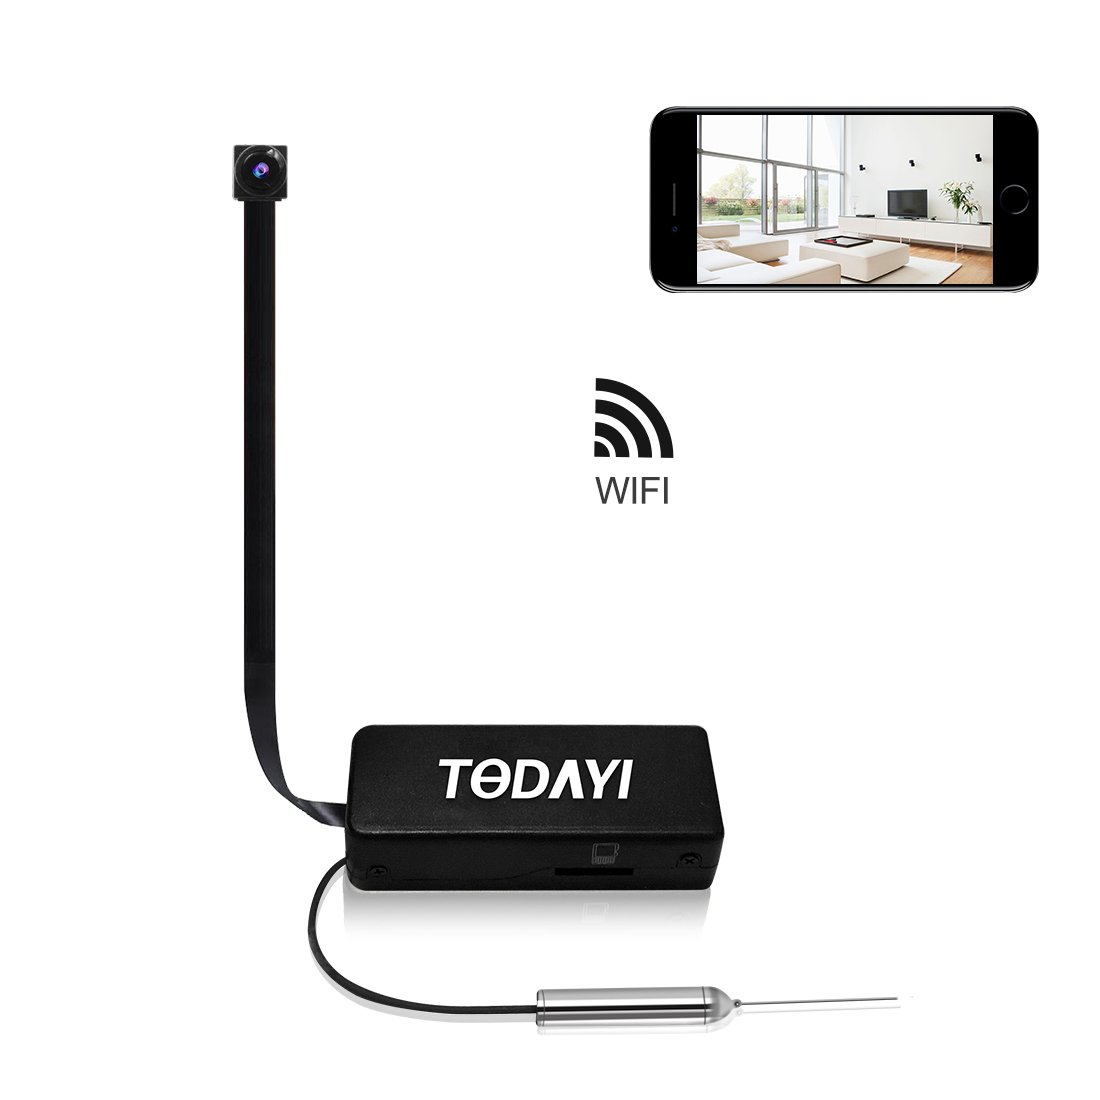 Spy Camera, TODAYI Mini Hidden Camera 720P Wireless WiFi Nanny Cam Indoor/Outdoor Portable Home Security Camera Motion Detection Loop Recording